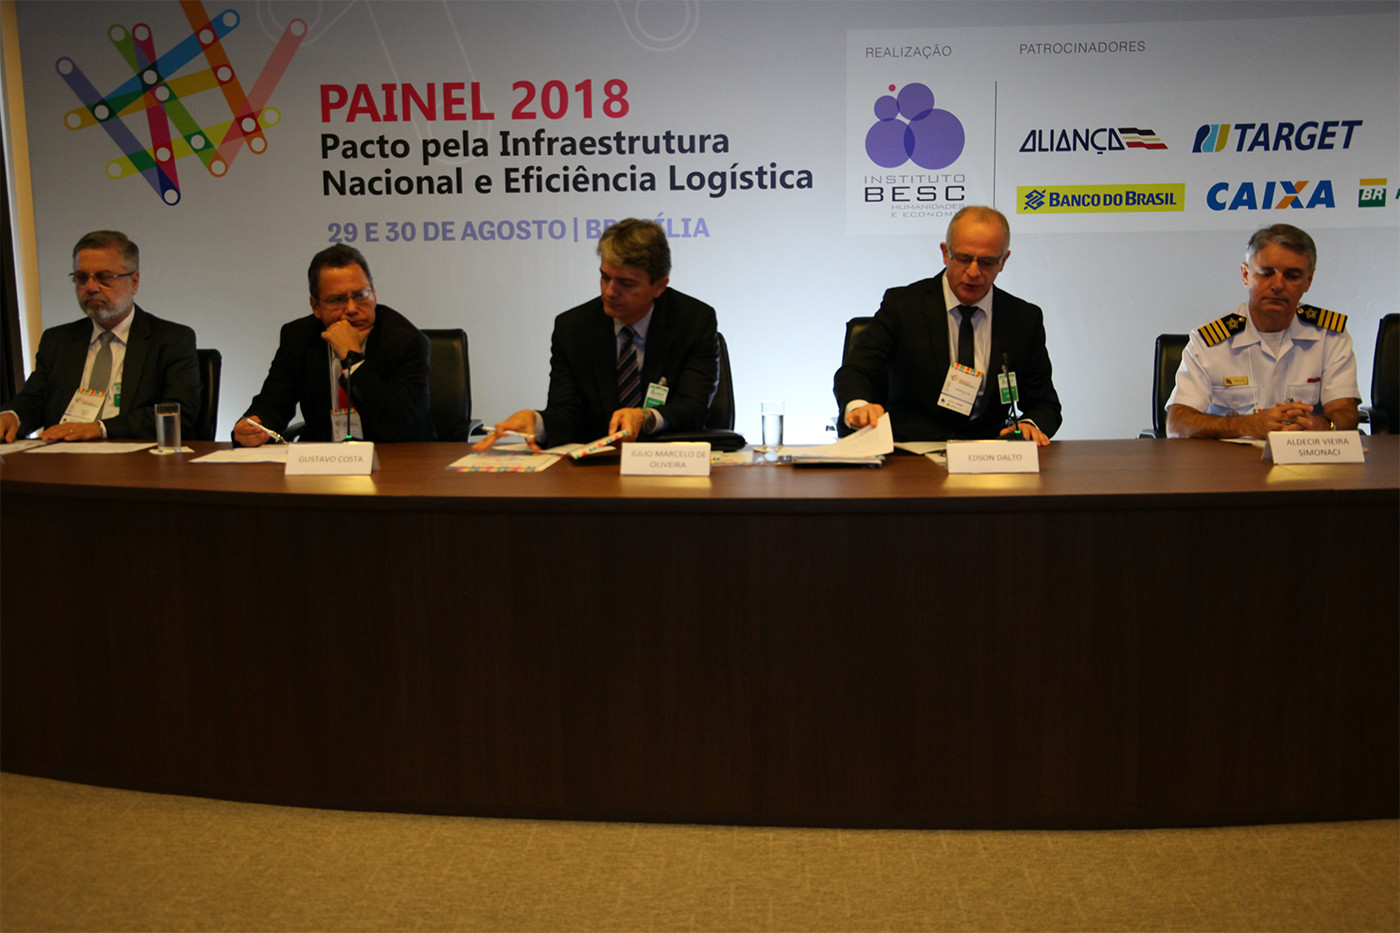 painel2018-10